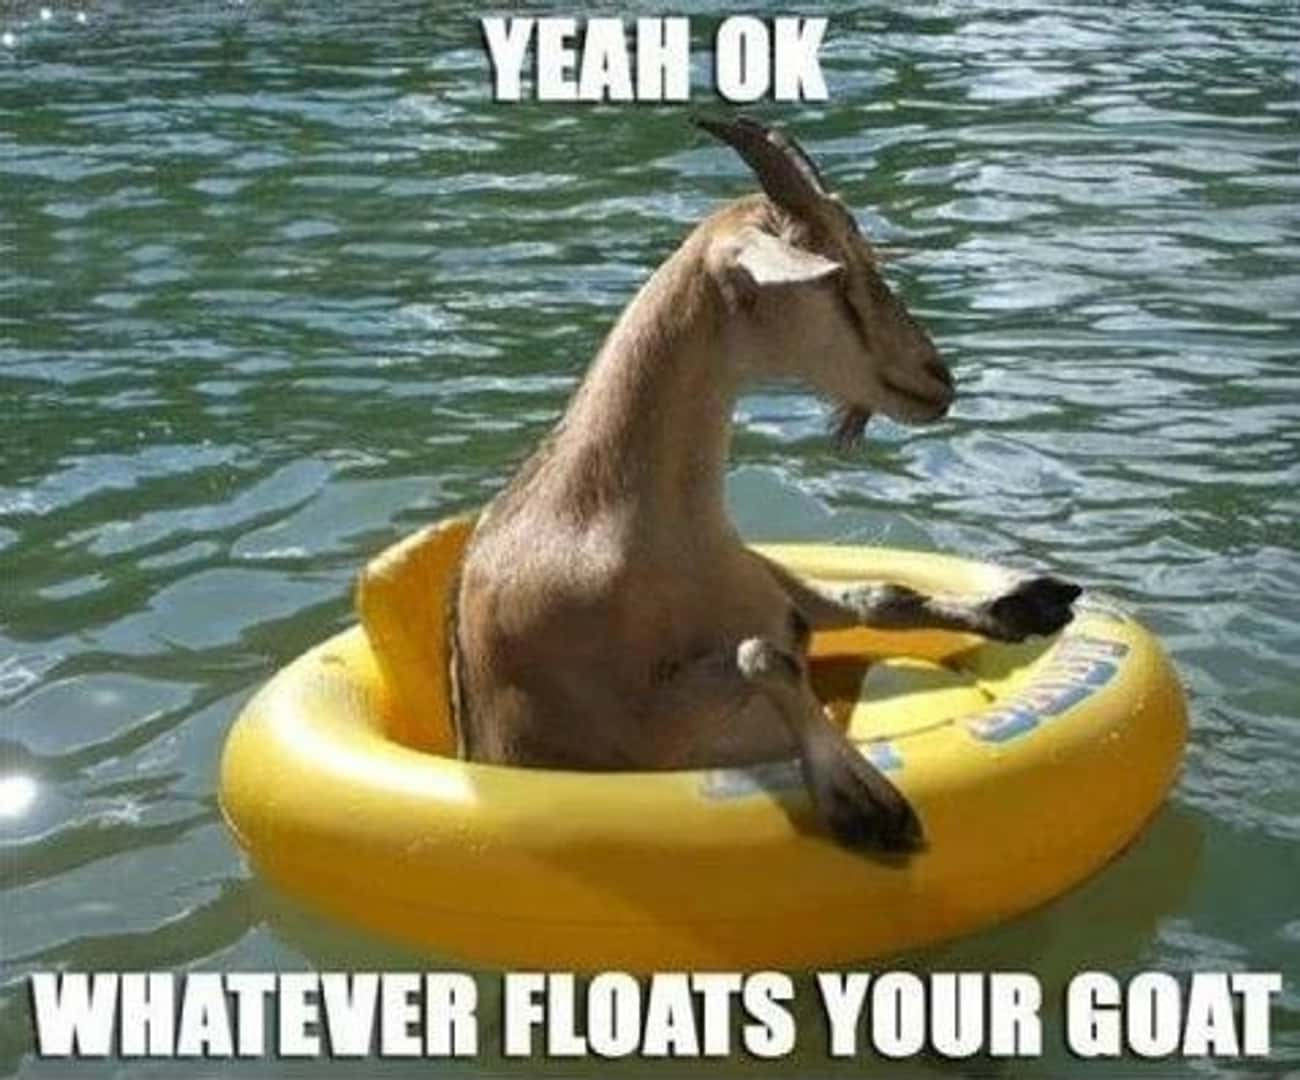 Goats are amphibious now! is listed (or ranked) 3 on the list The Best Goat Memes, Jokes, and Puns